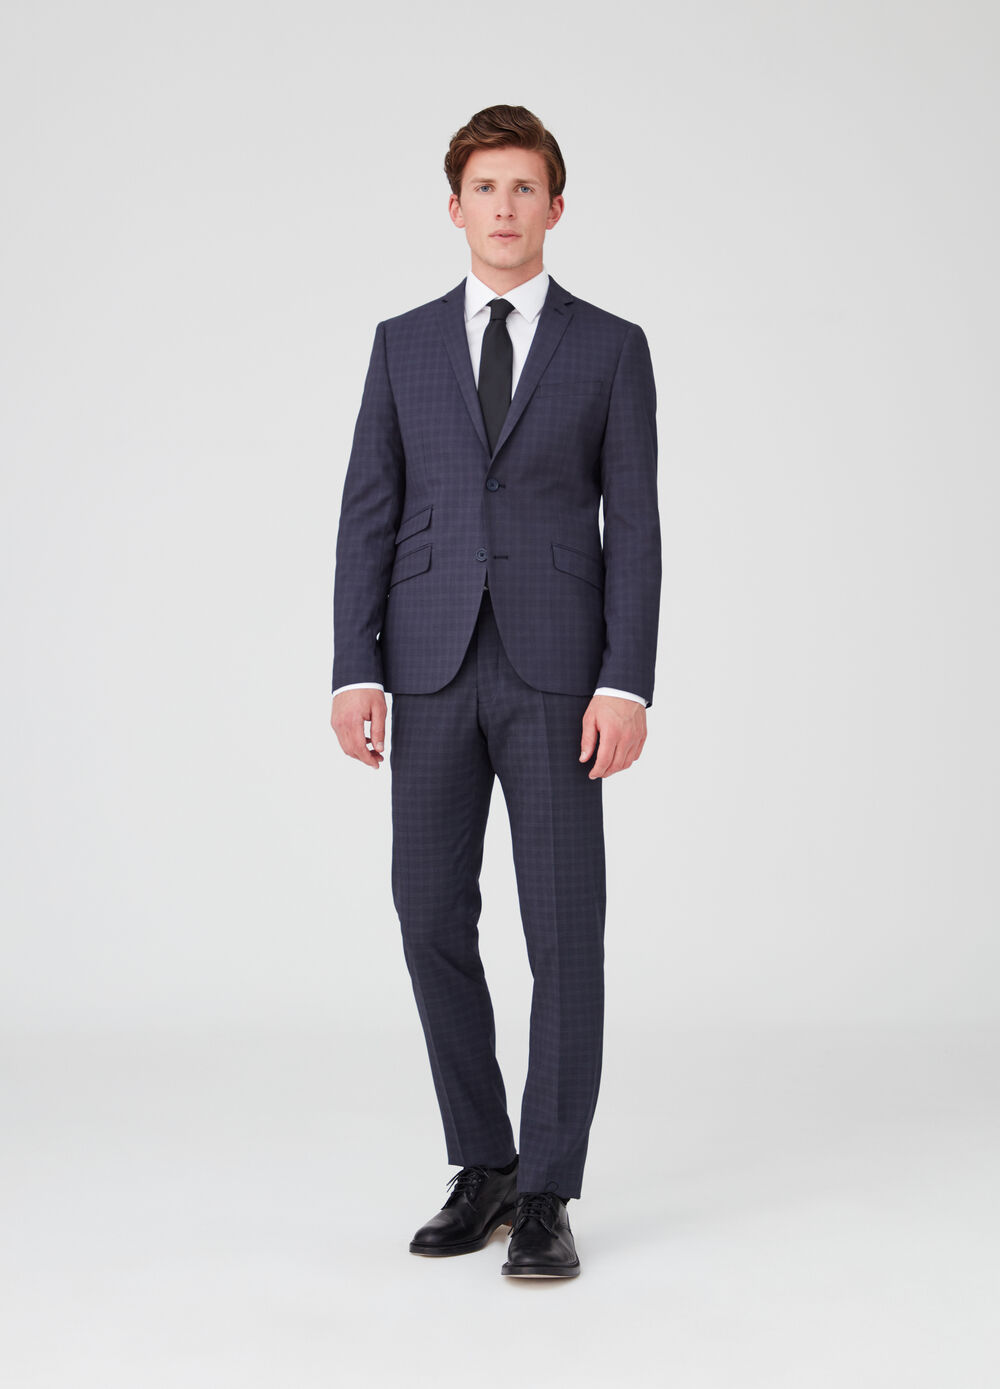 Suit with two-button jacket and check trousers